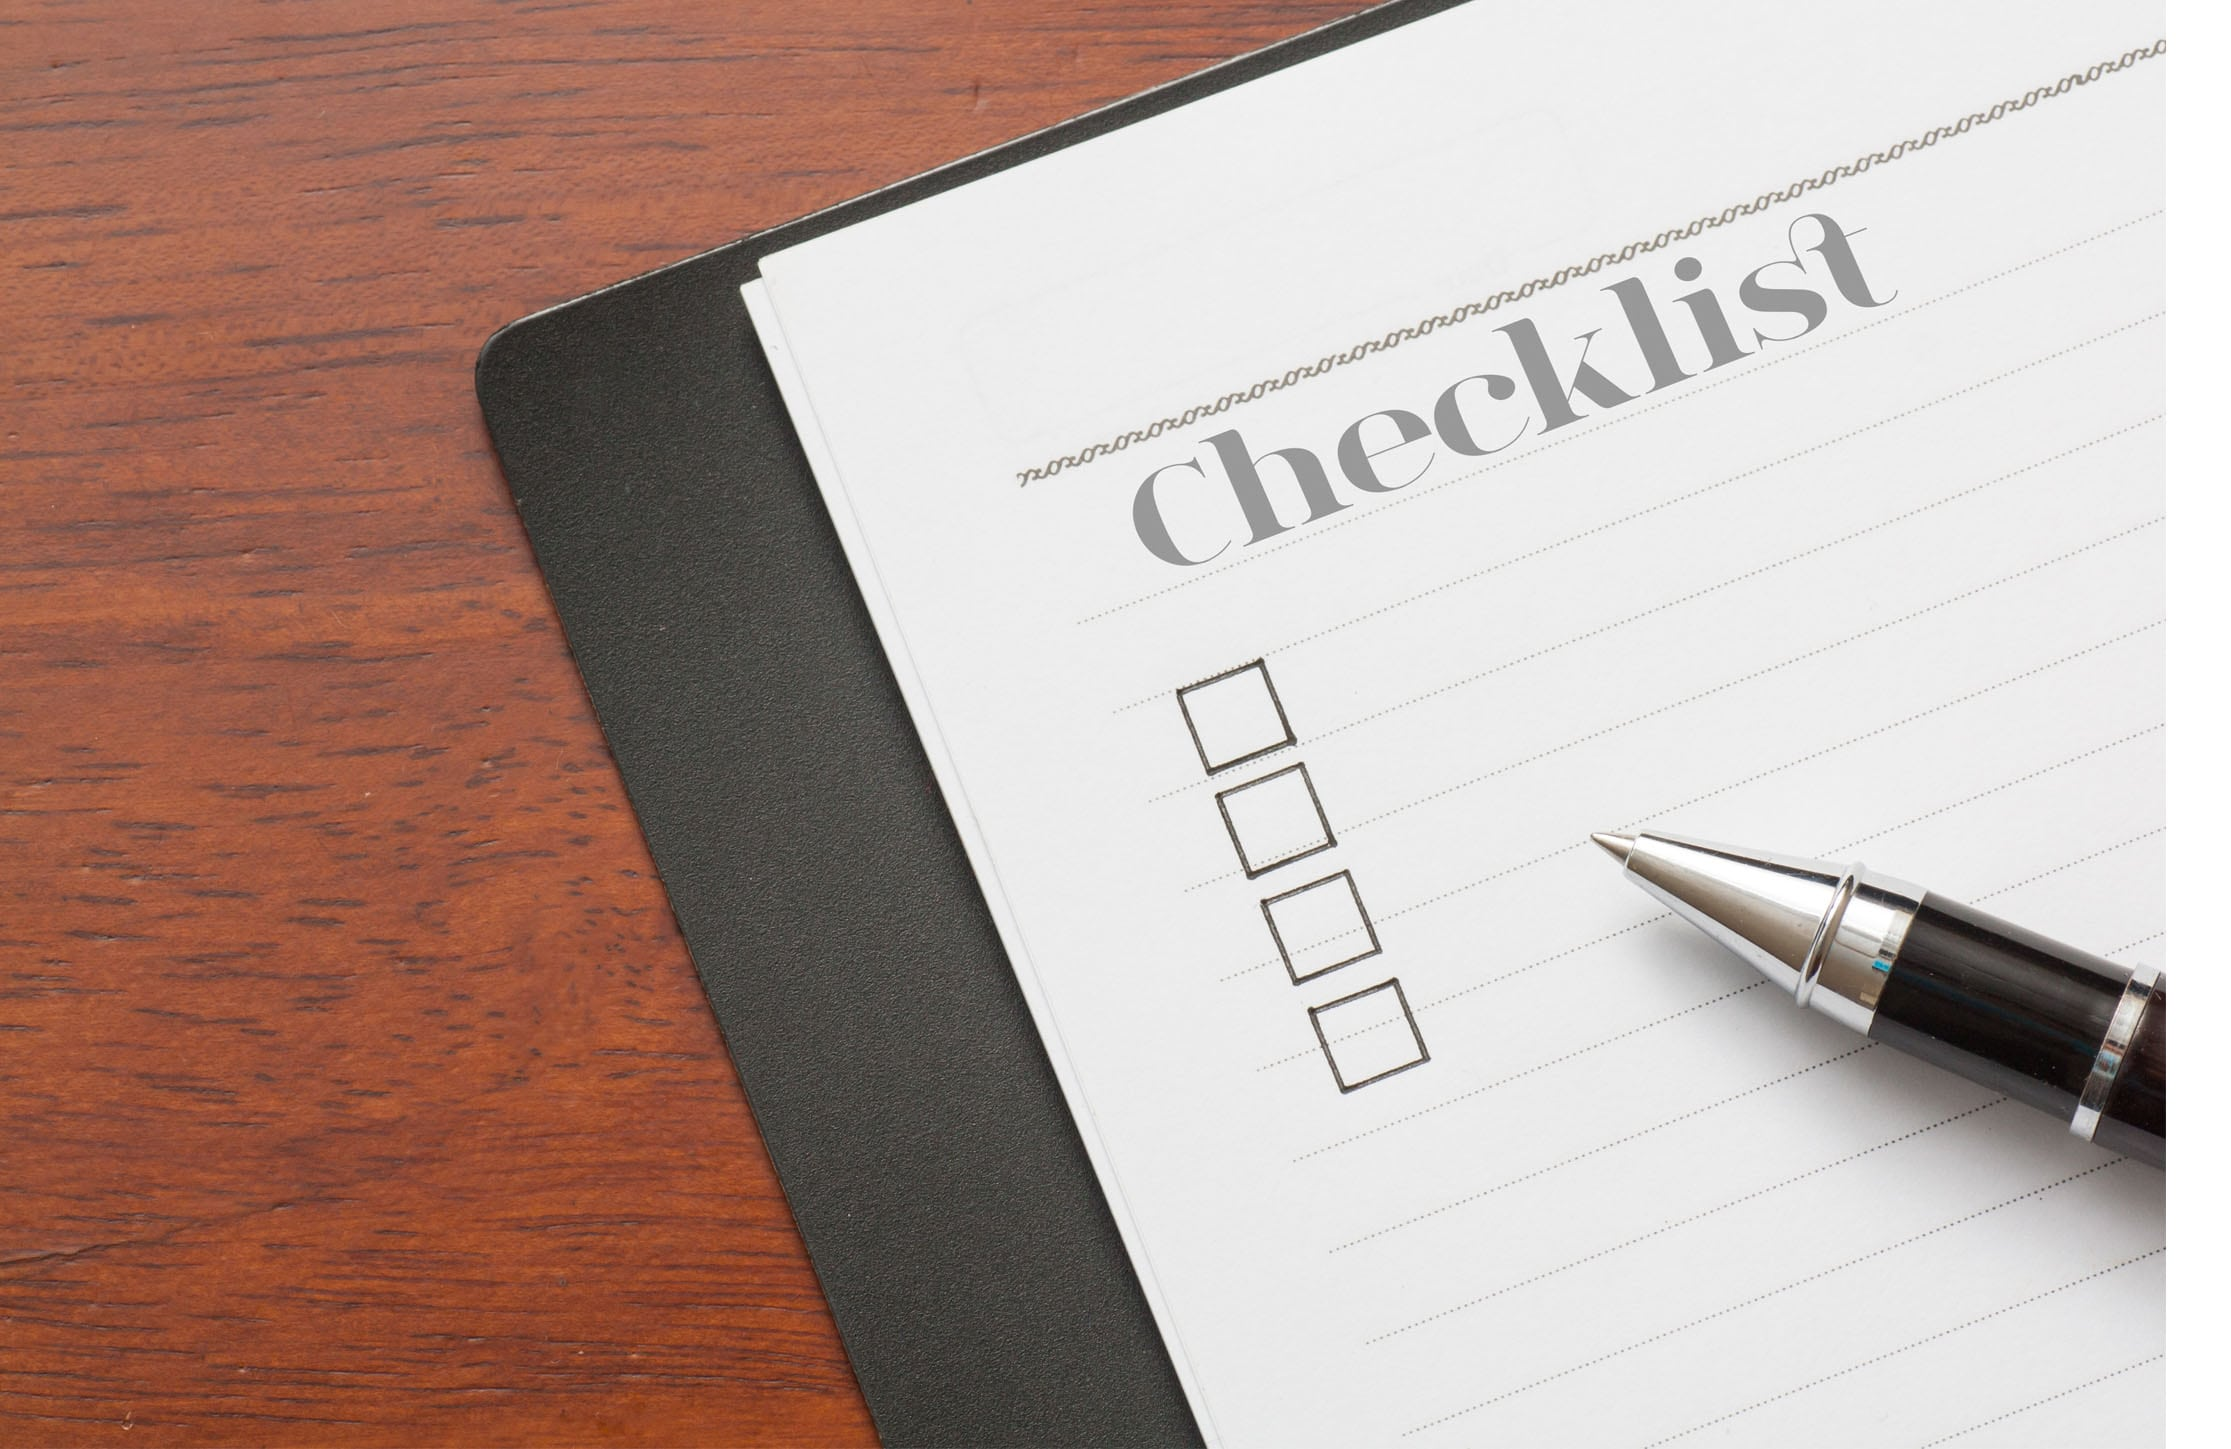 CPA's Pre-Tax Season Cloud Computing Checklist